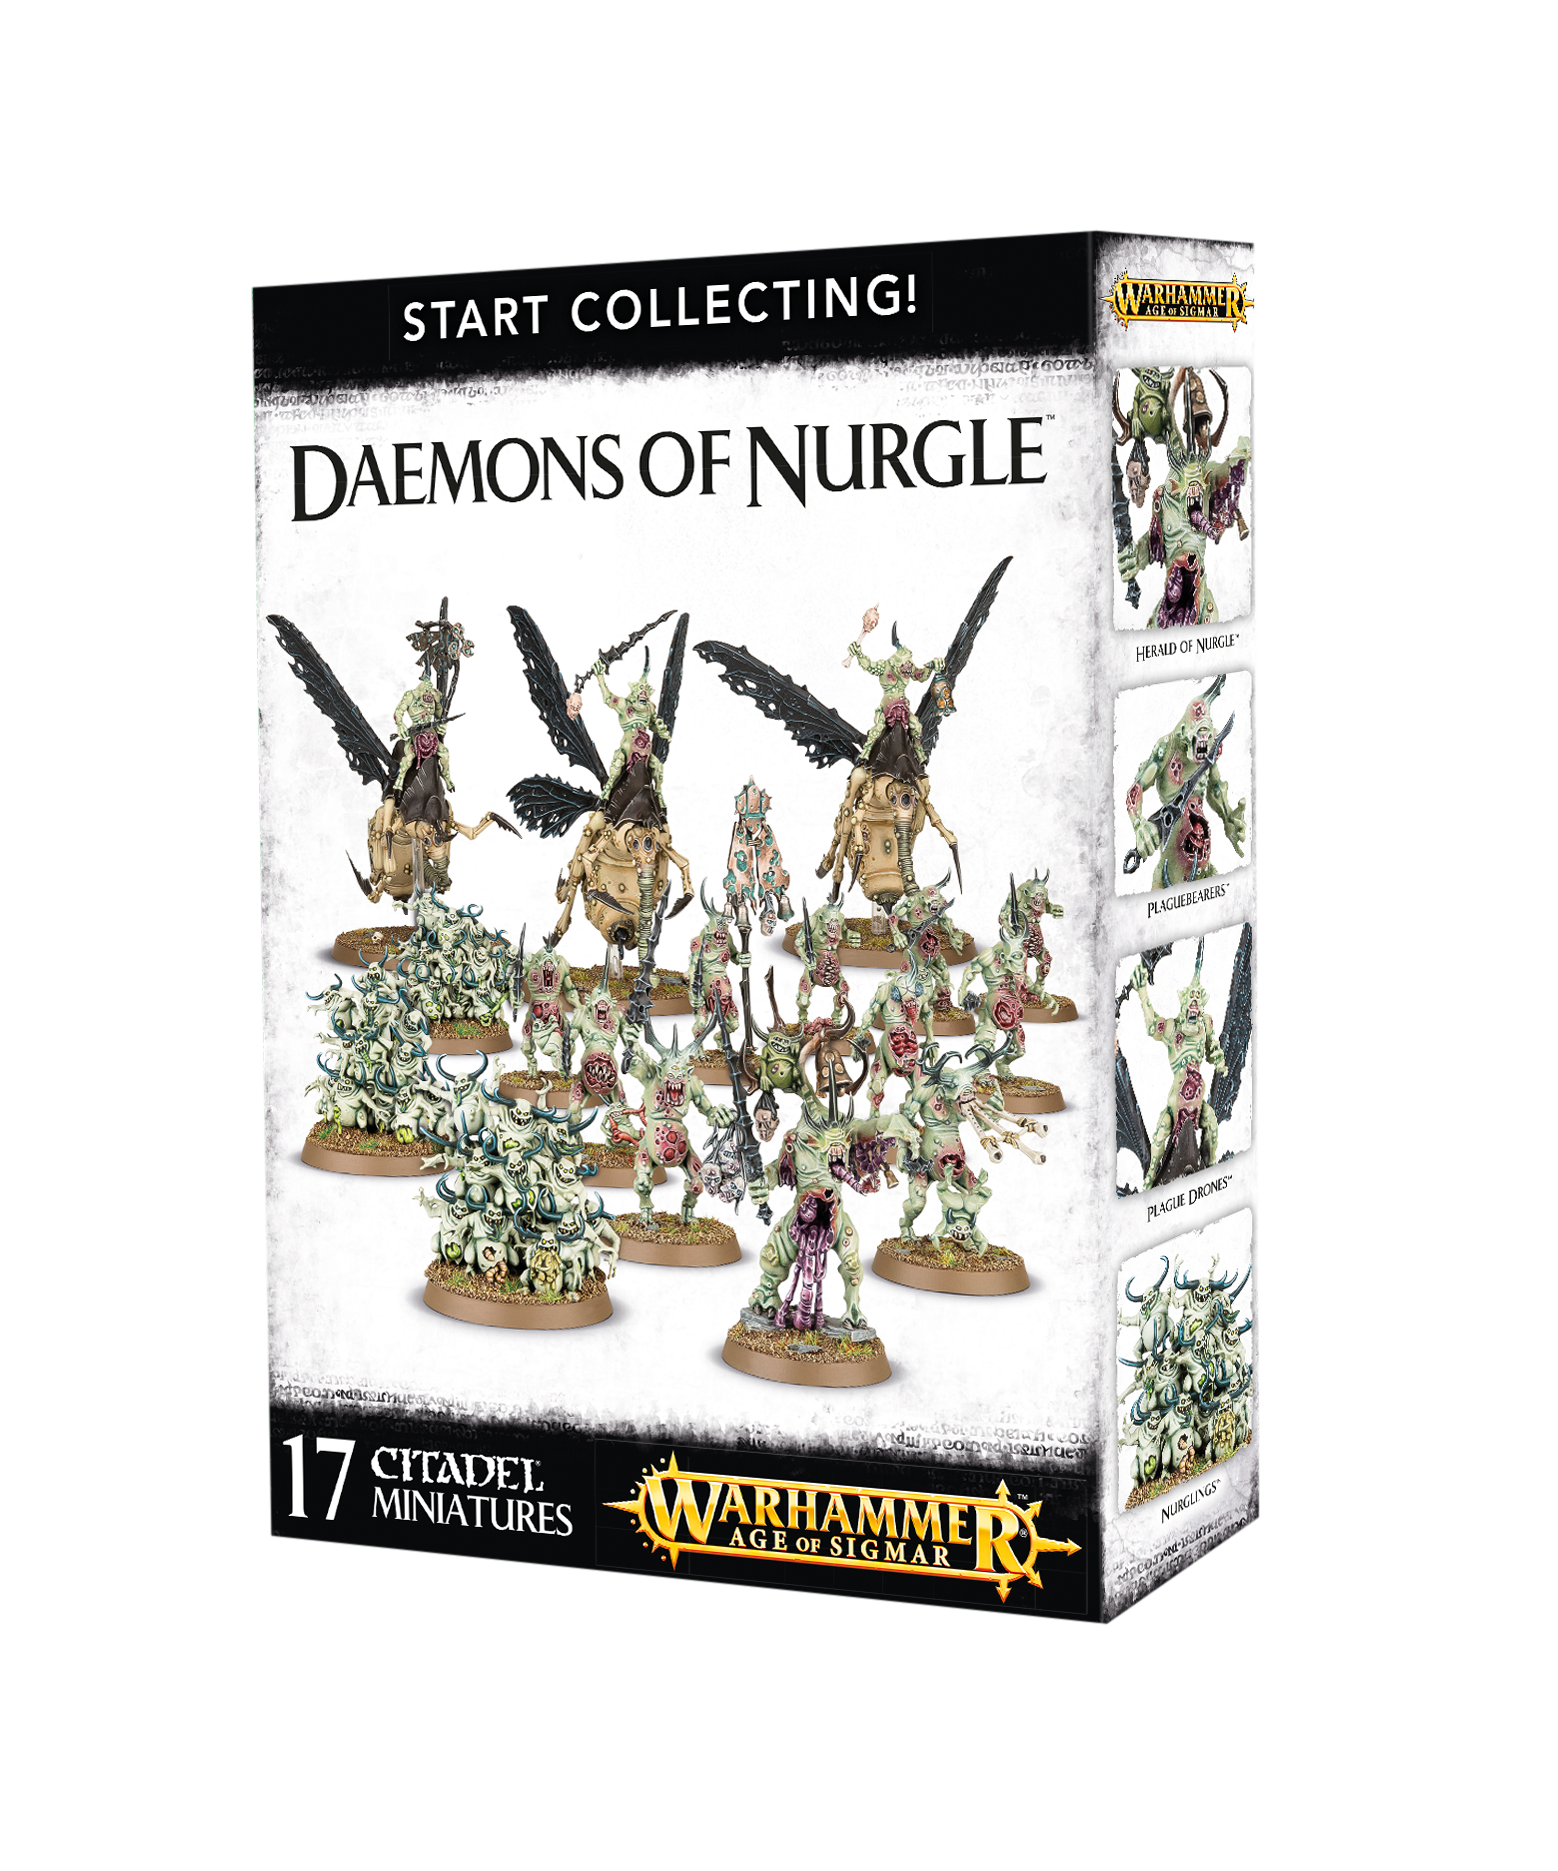 Warhammer 40,000/ Age of Sigmar: Daemons of Nurgle: Start Collecting!